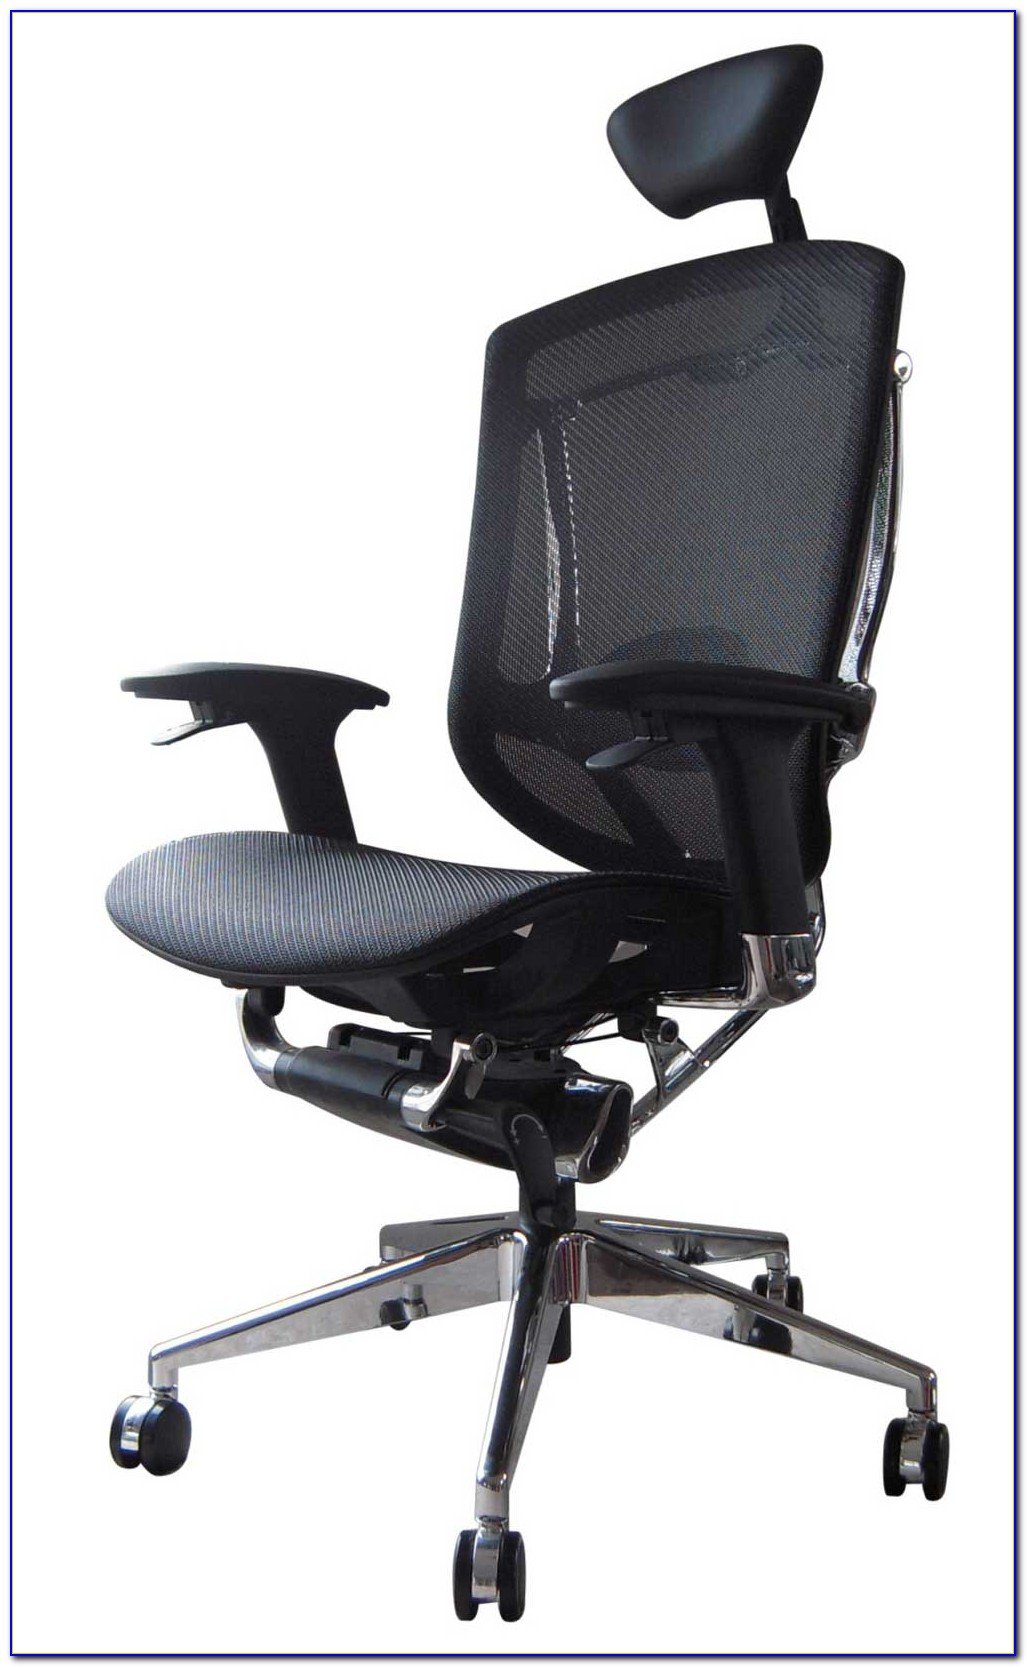 Most Comfortable Computer Chair For Gaming